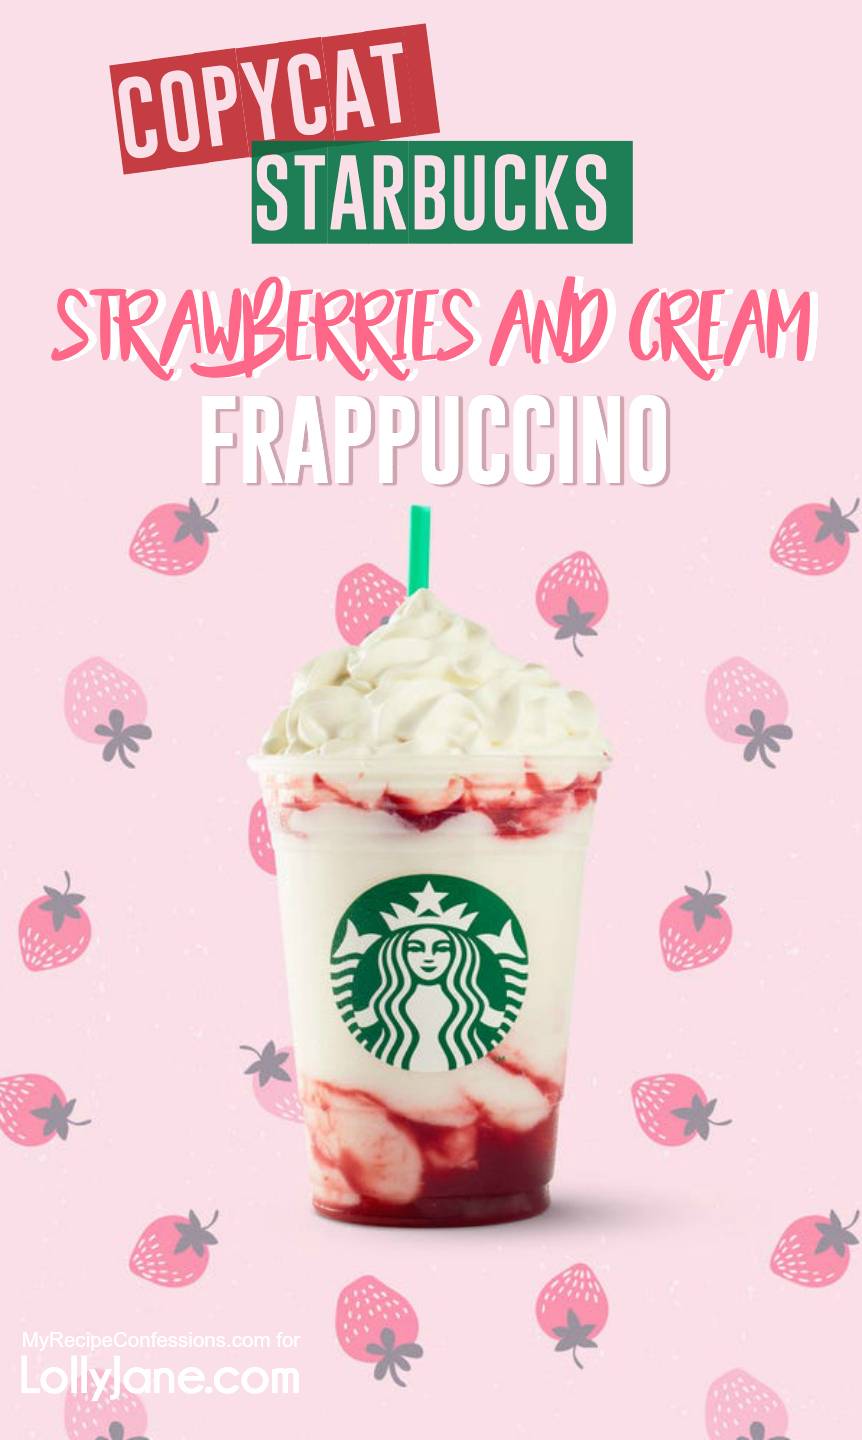 EASY 5-Ingredient Copycat Starbucks Strawberries and Cream Frappuccino recipe, just blend and top with whipped cream. YUM and SO refreshing! #starbucks #copycatstarbucks #starbucksdupe #starbucksrecipe #strawberriesandcream #strawberriesandcreamfrrappuccino #frappuccino #starbucksfrappuccino #summertreat